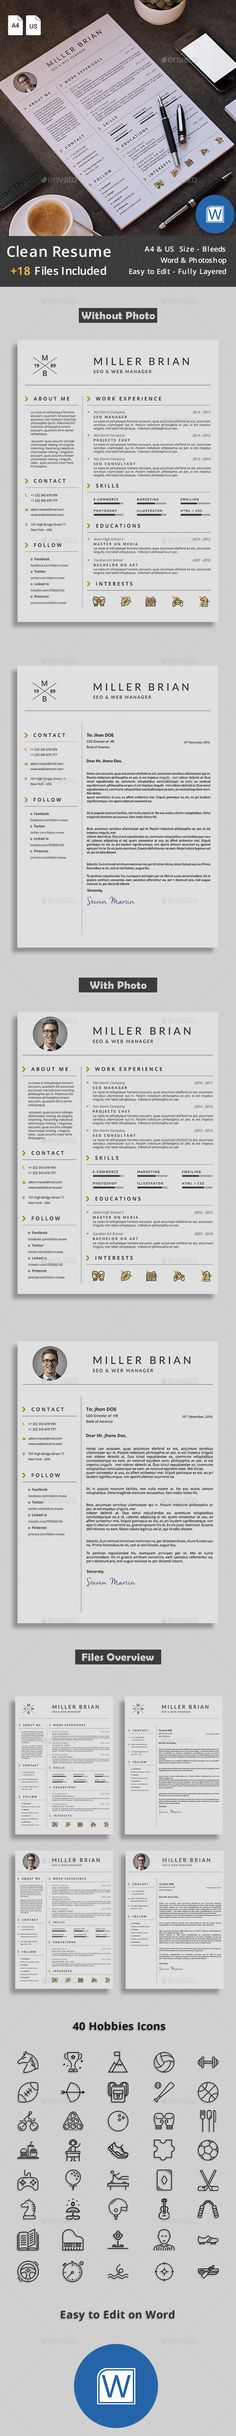 Hobbies For Resume Delectable Resume  Resumes Stationery Download Here Httpsgraphicriver .